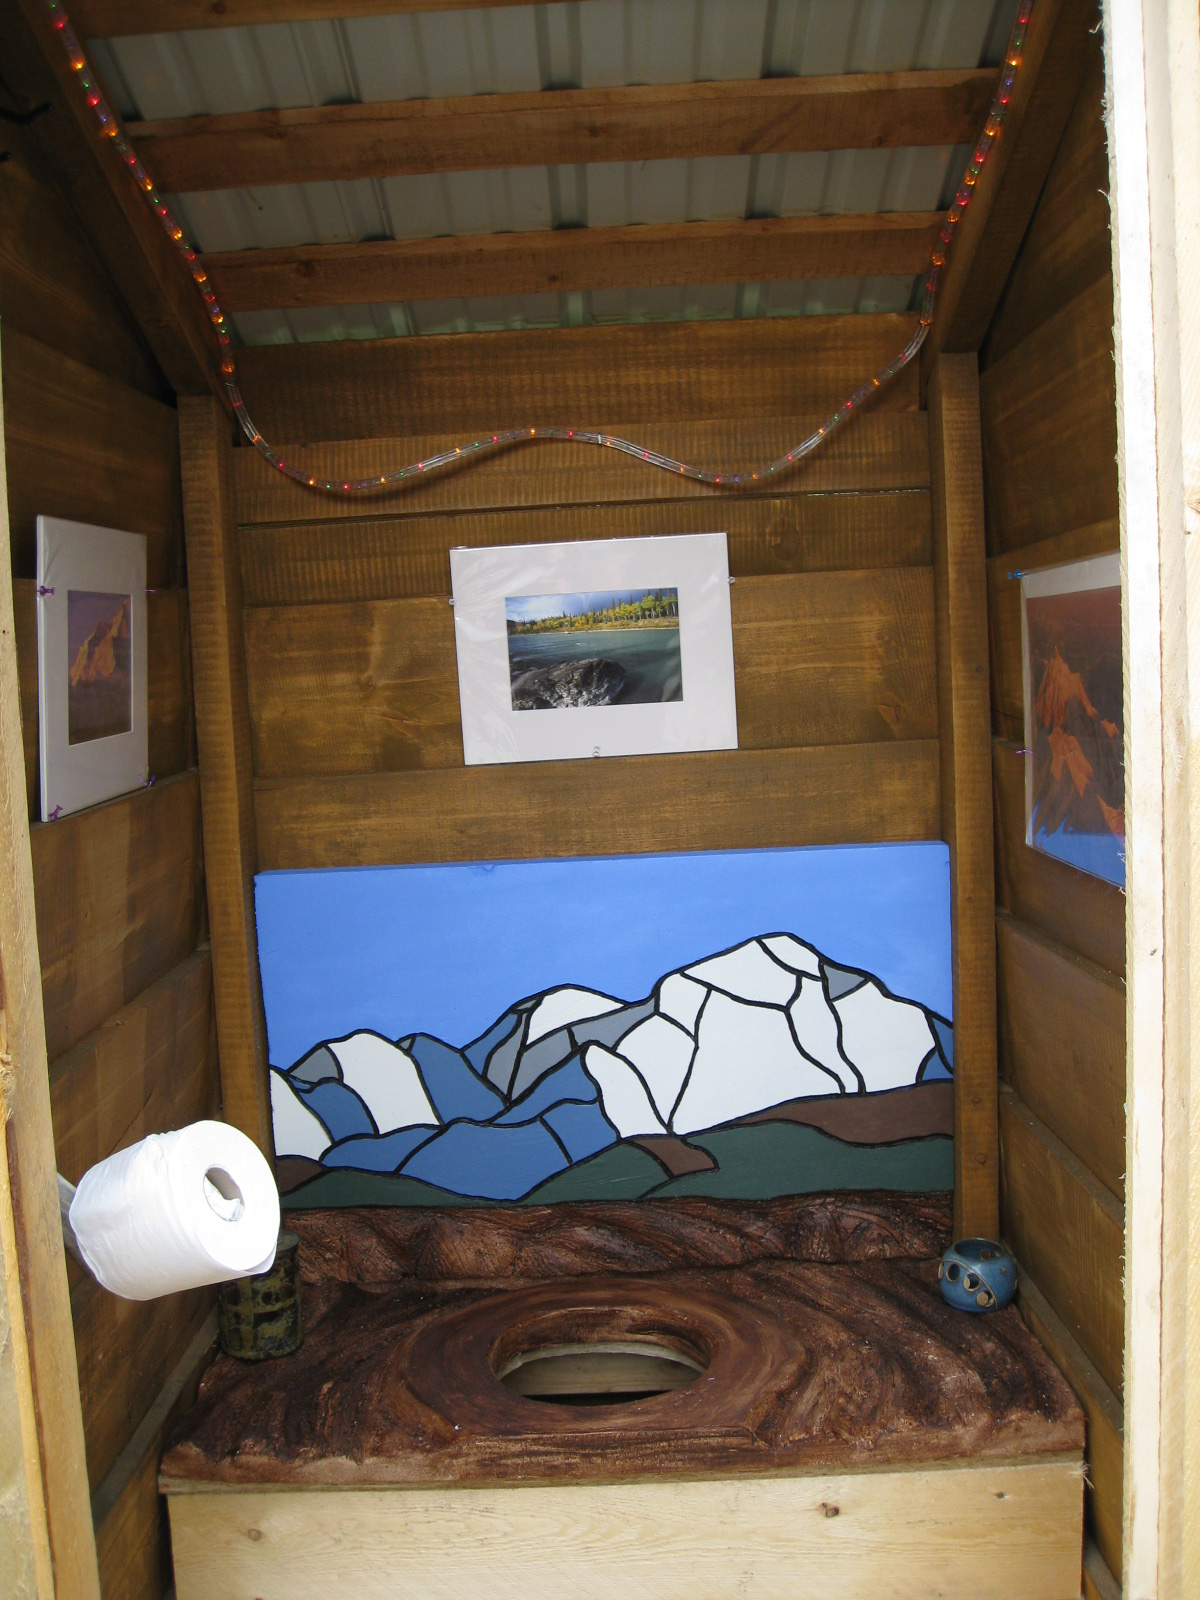 Magnificent Polaranimals Outhouses In Alaska Largest Home Design Picture Inspirations Pitcheantrous